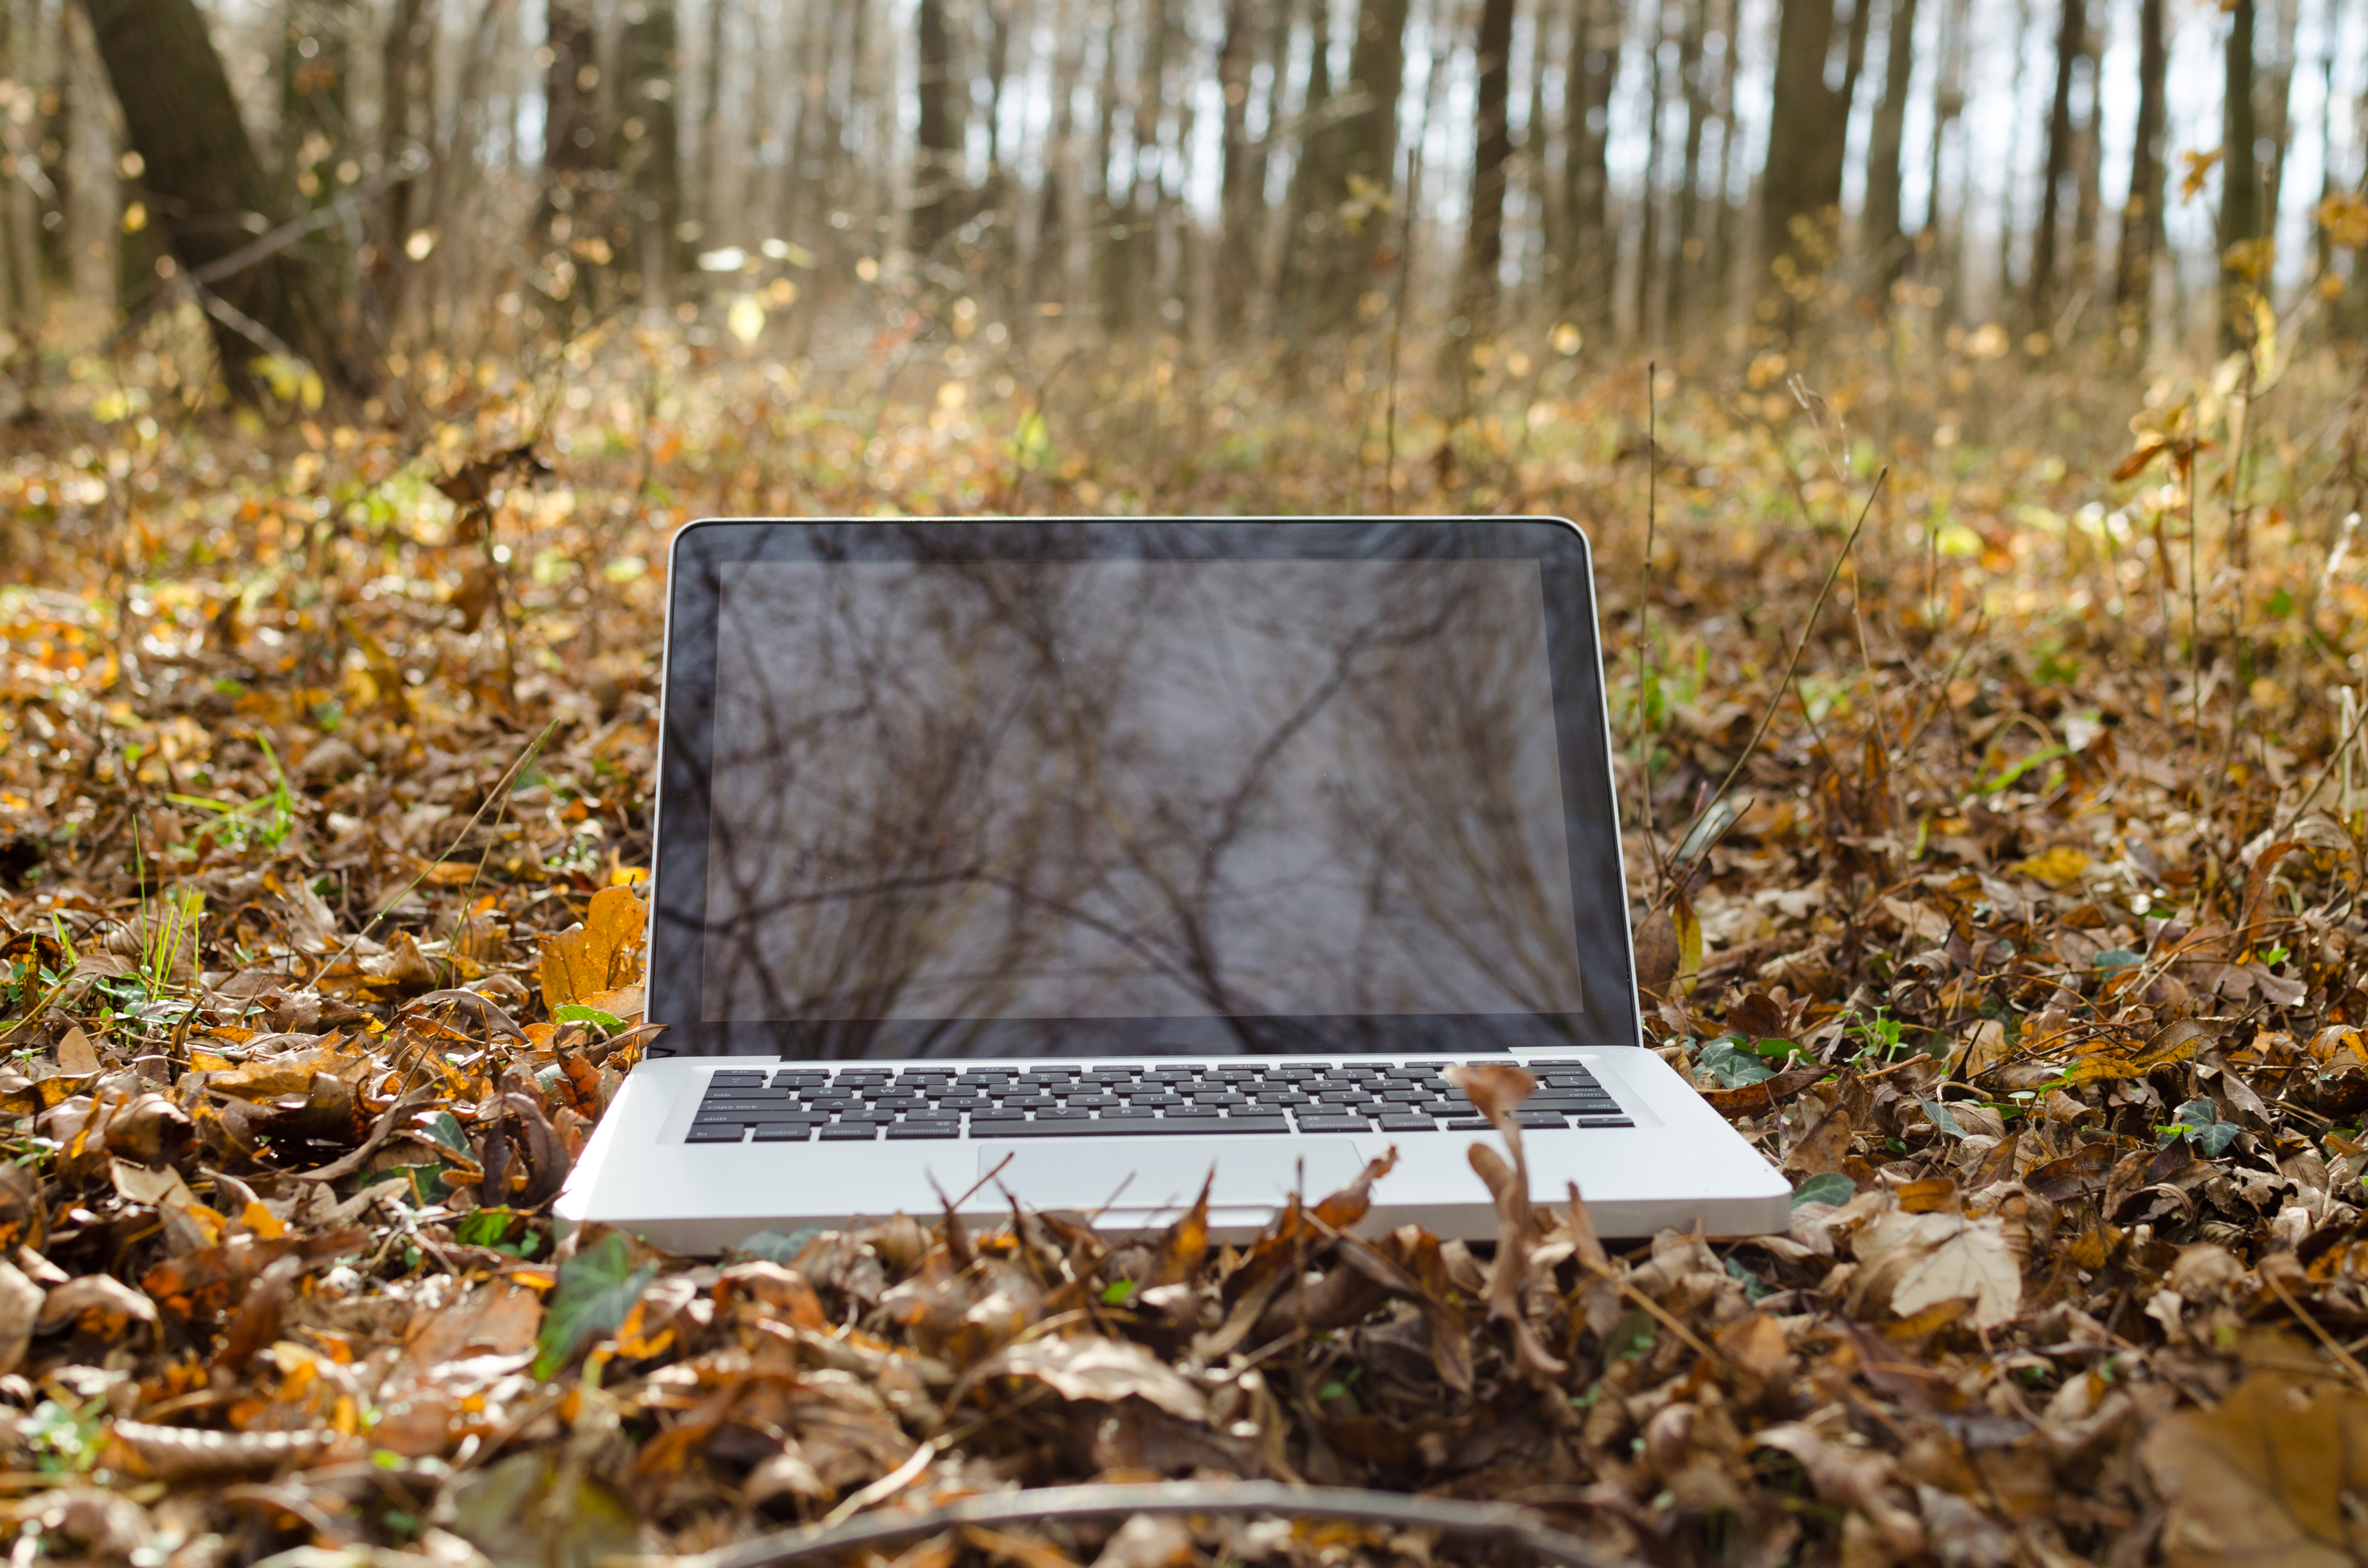 Working on notebook in forest photo